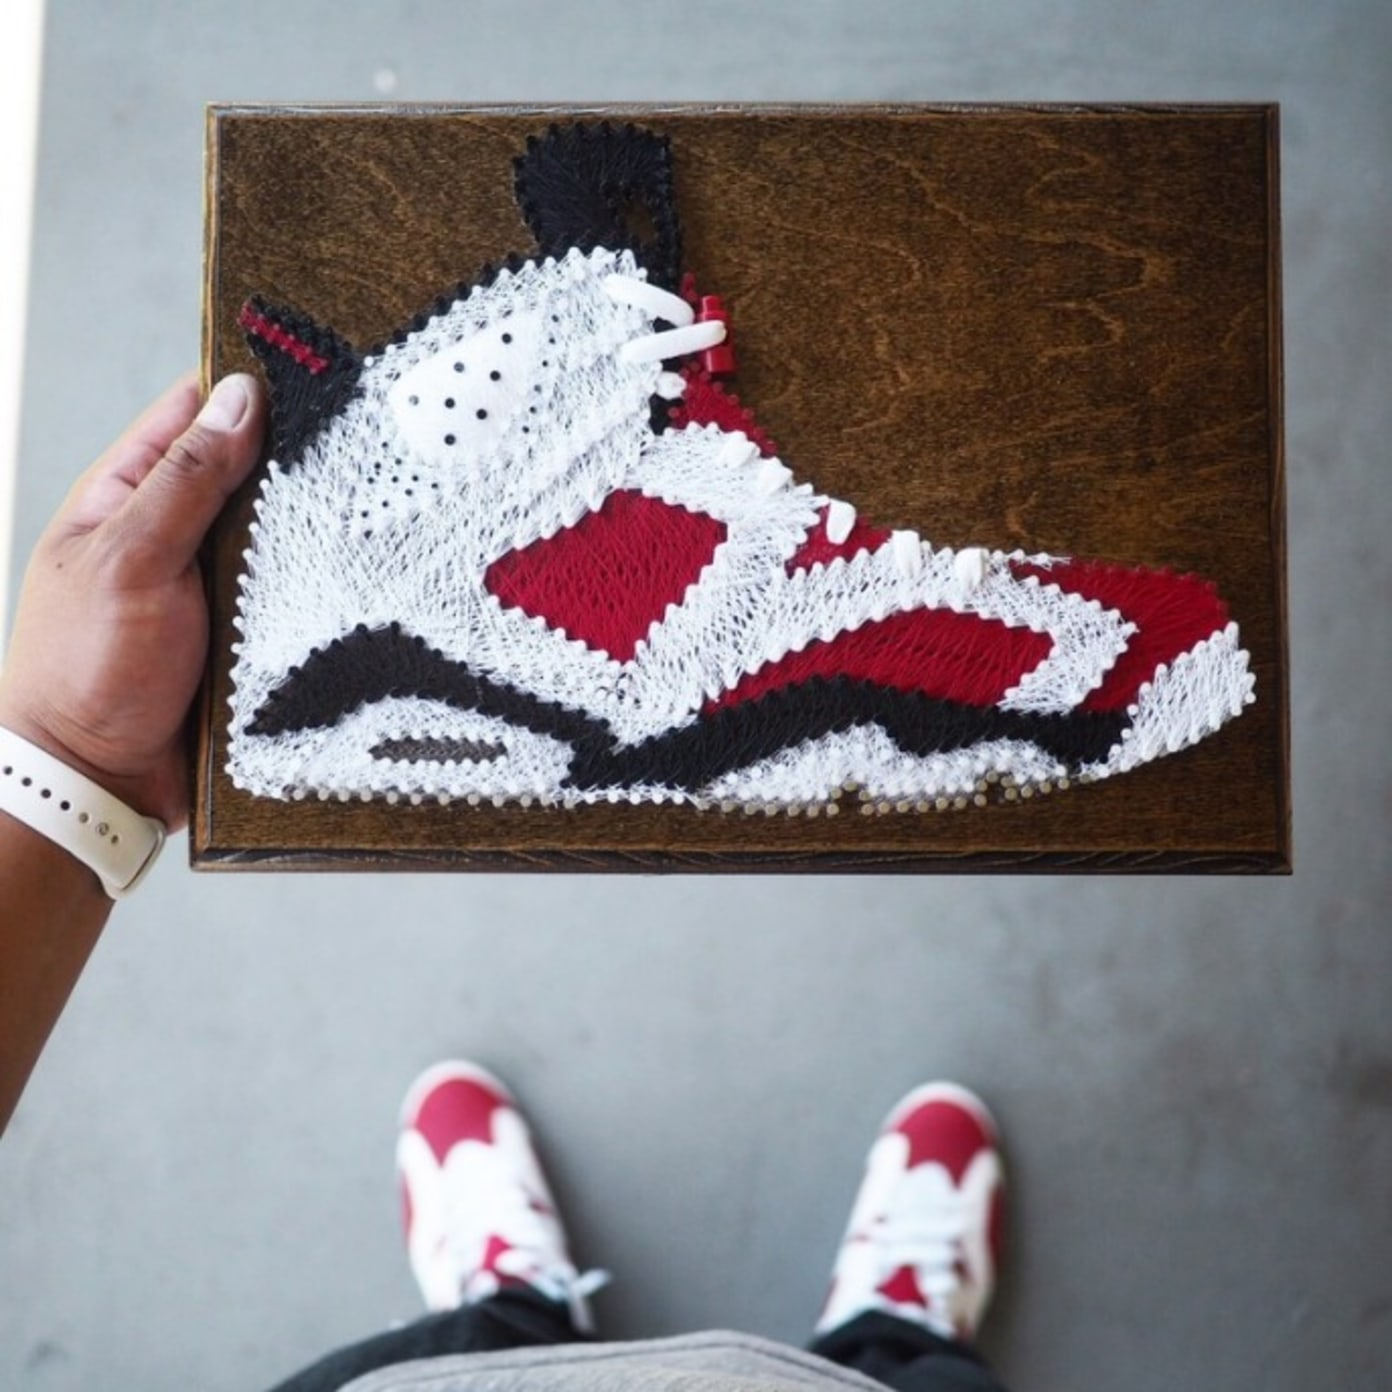 Sole Stitches: Your favourite sneakers reimagined with String!